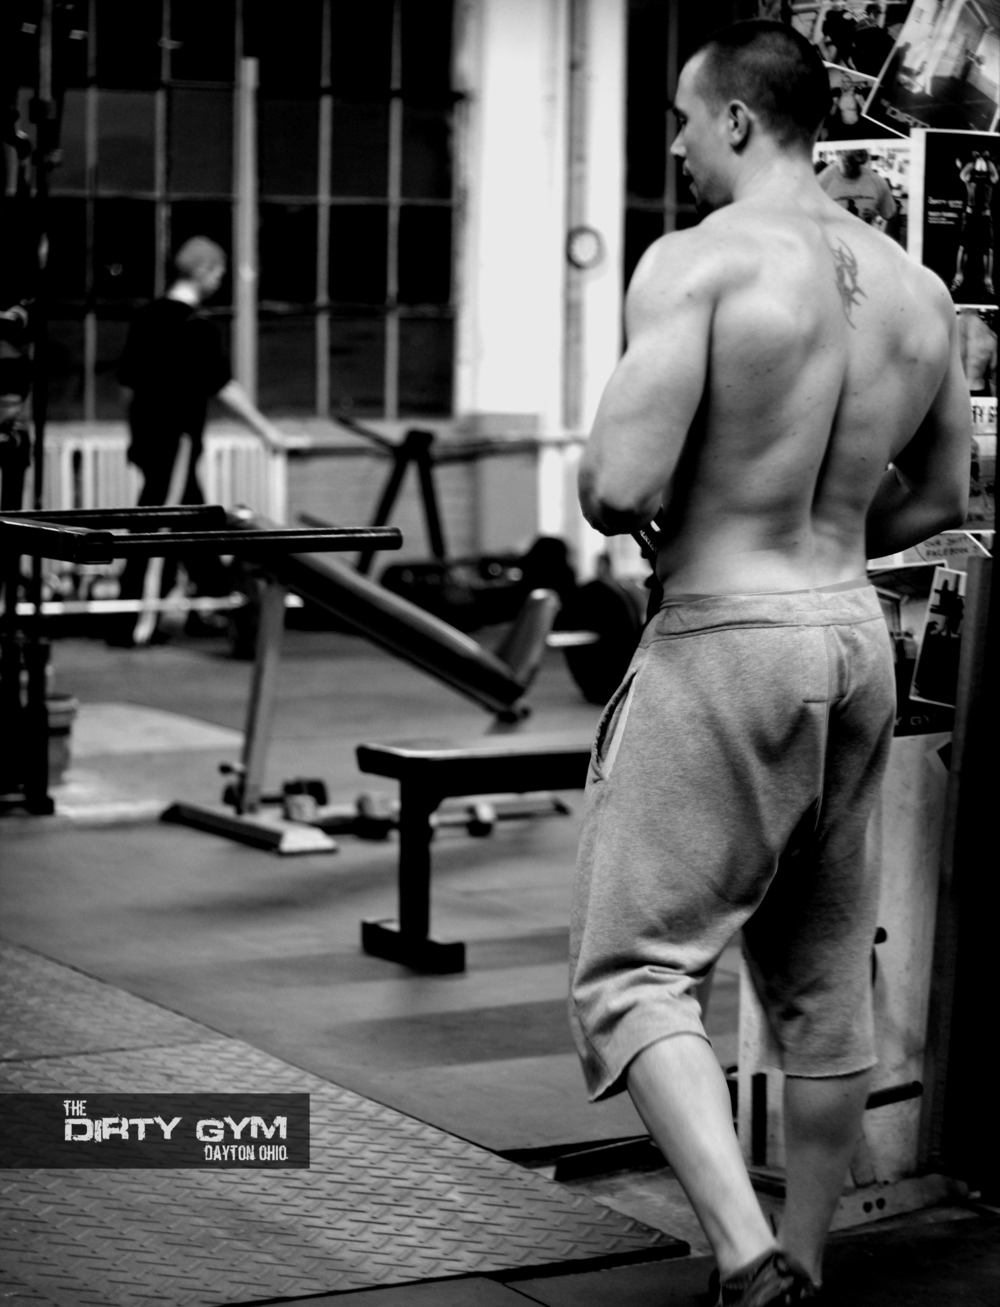 Dirty Gym Coach and Athlete Matt Swartout, 2-weeks out from his first (and possibly last) Physique Competition.